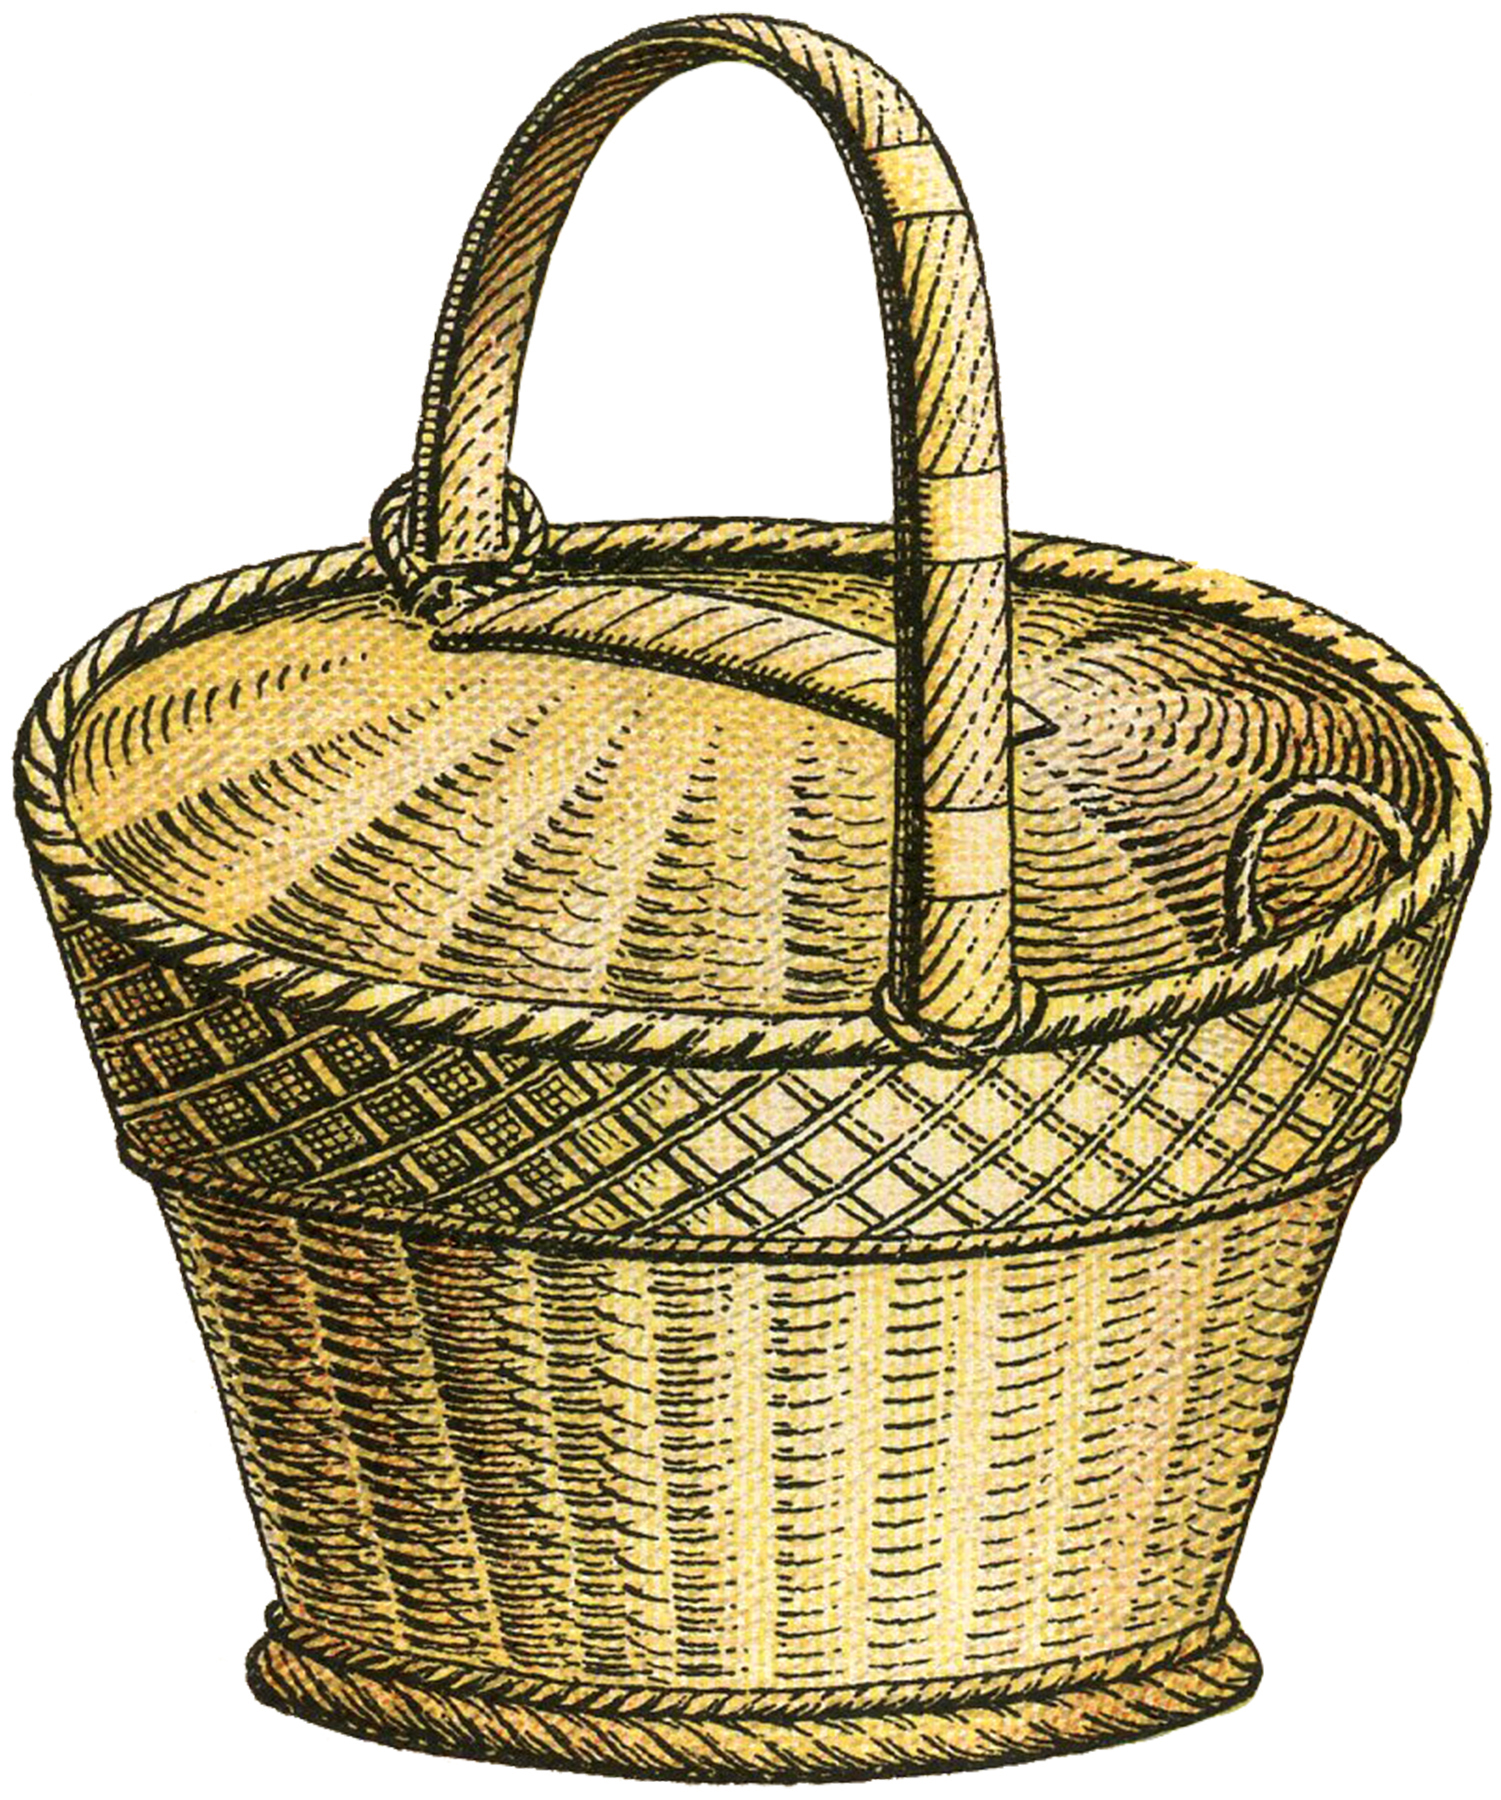 Wicker basket clipart.